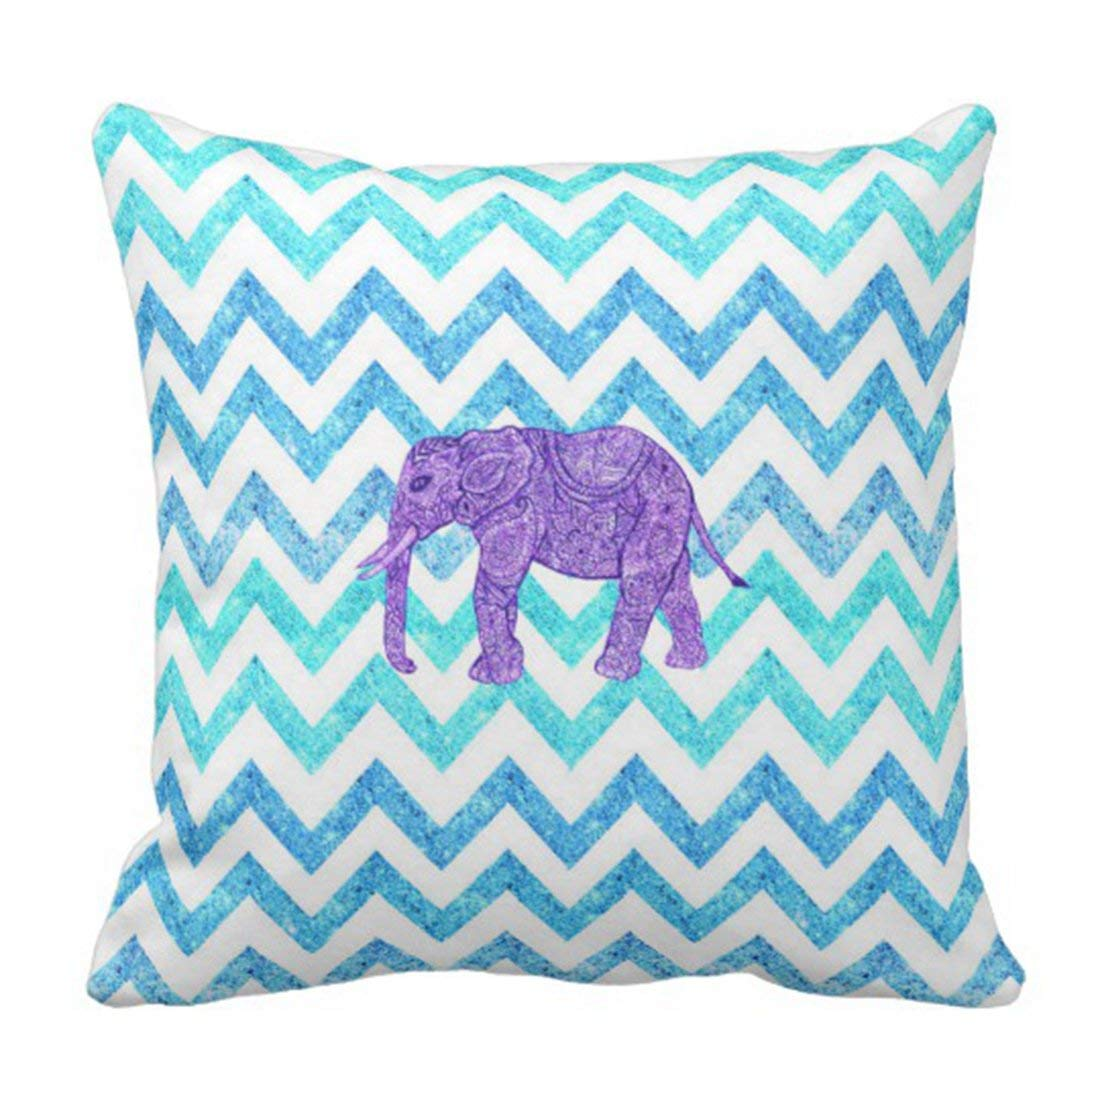 BPBOP Floral Sketch Purple Paisley Elephant Girly Teal Glitter Green Ombre Pillowcase Cushion Cover 20x20 inches